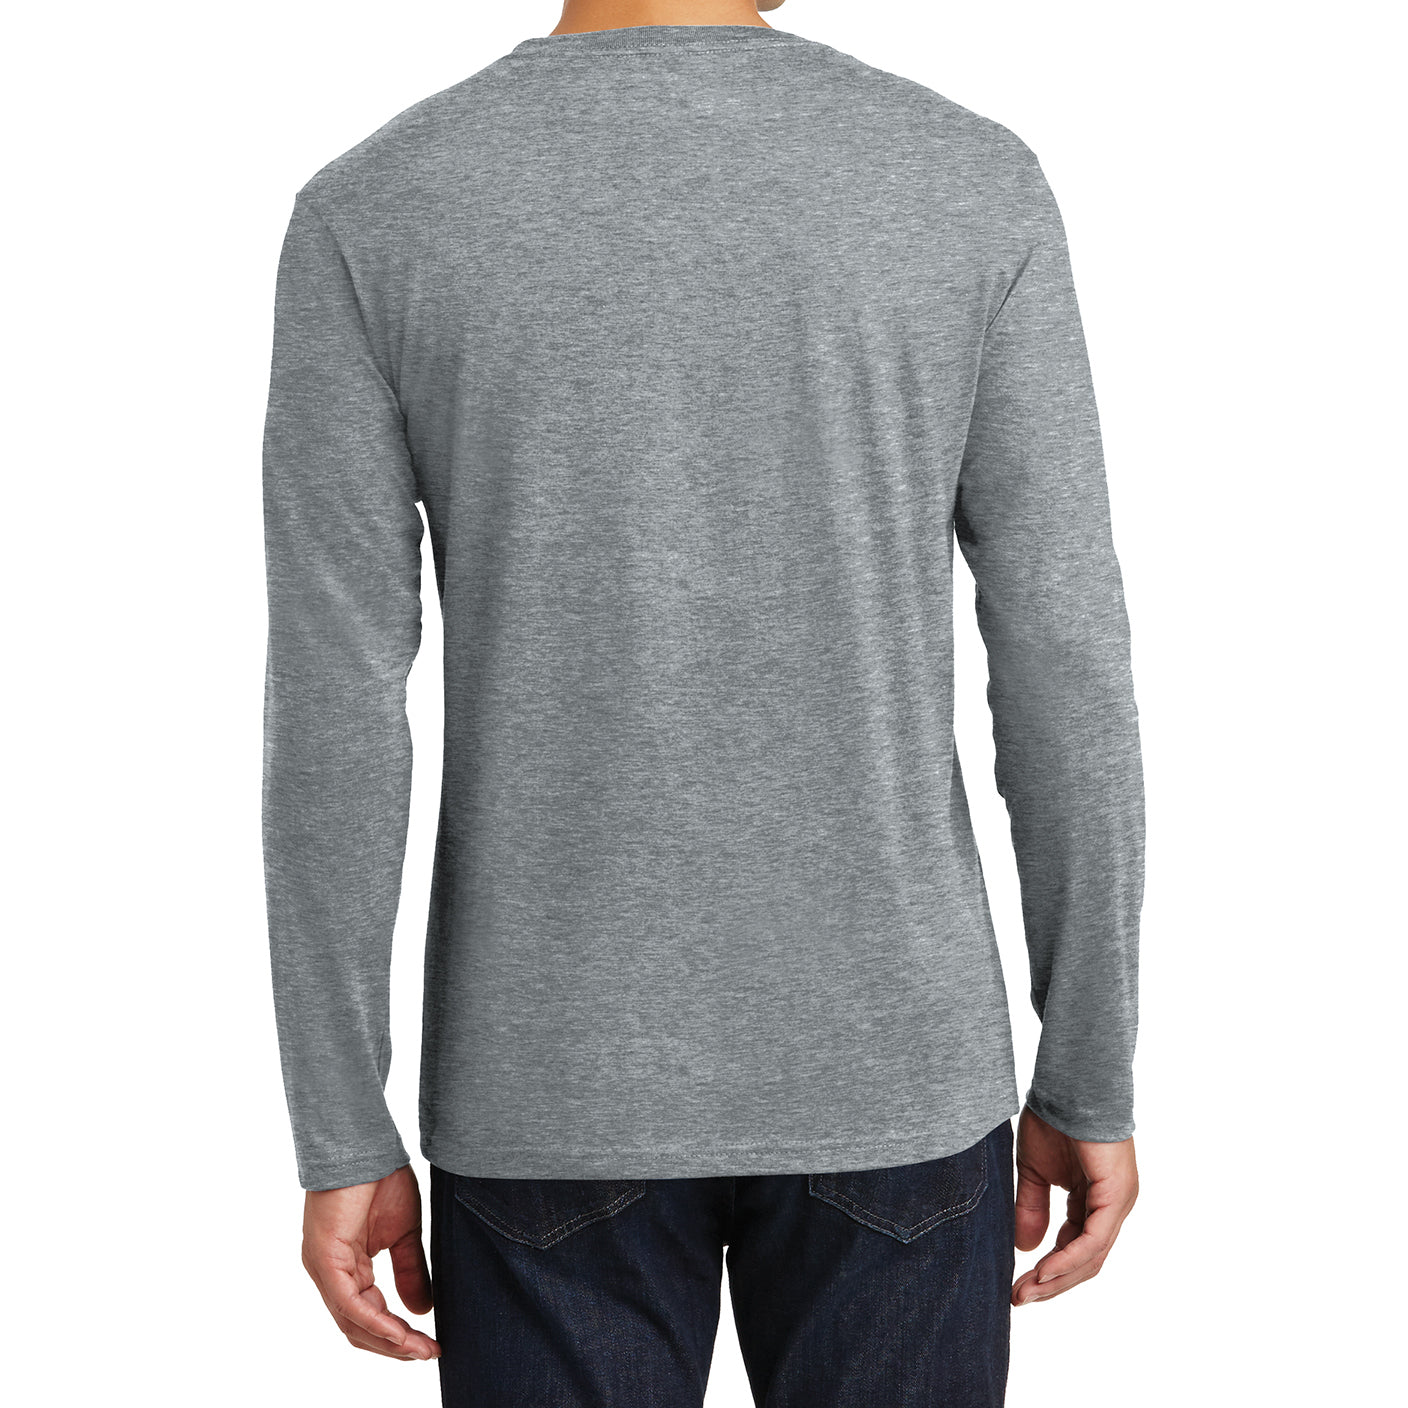 Mens Perfect Weight Long Sleeve Tee - Heathered Steel - Back